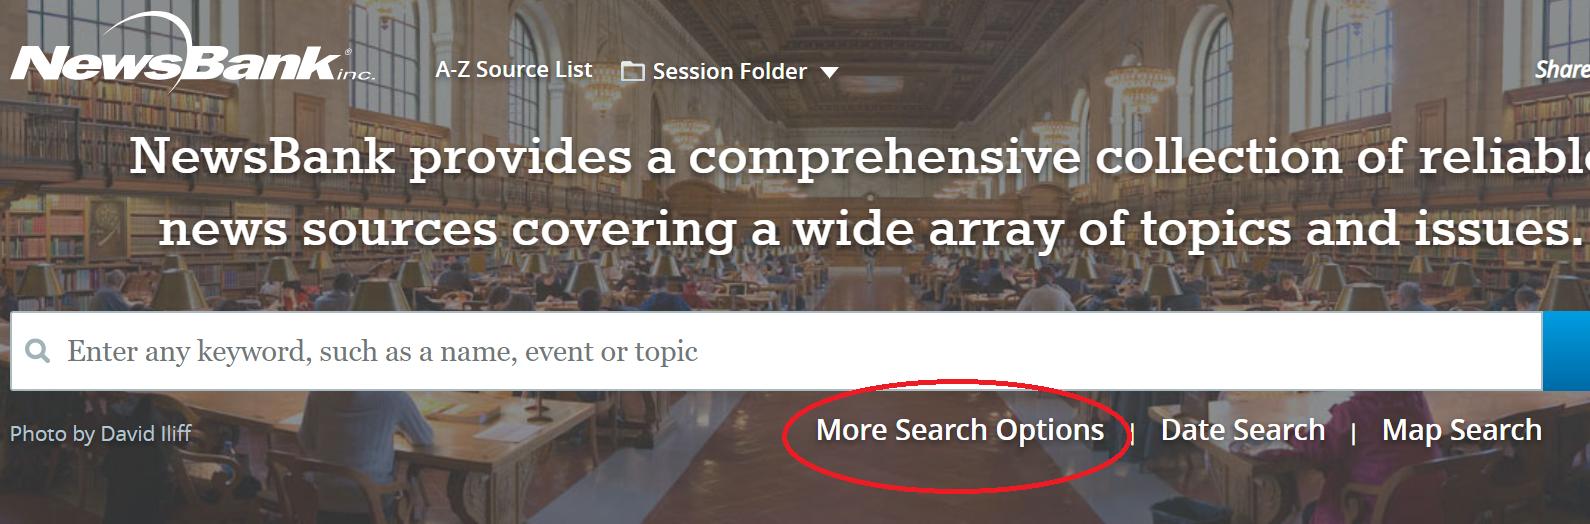 Access World News - Select More Search Options for advanced search page